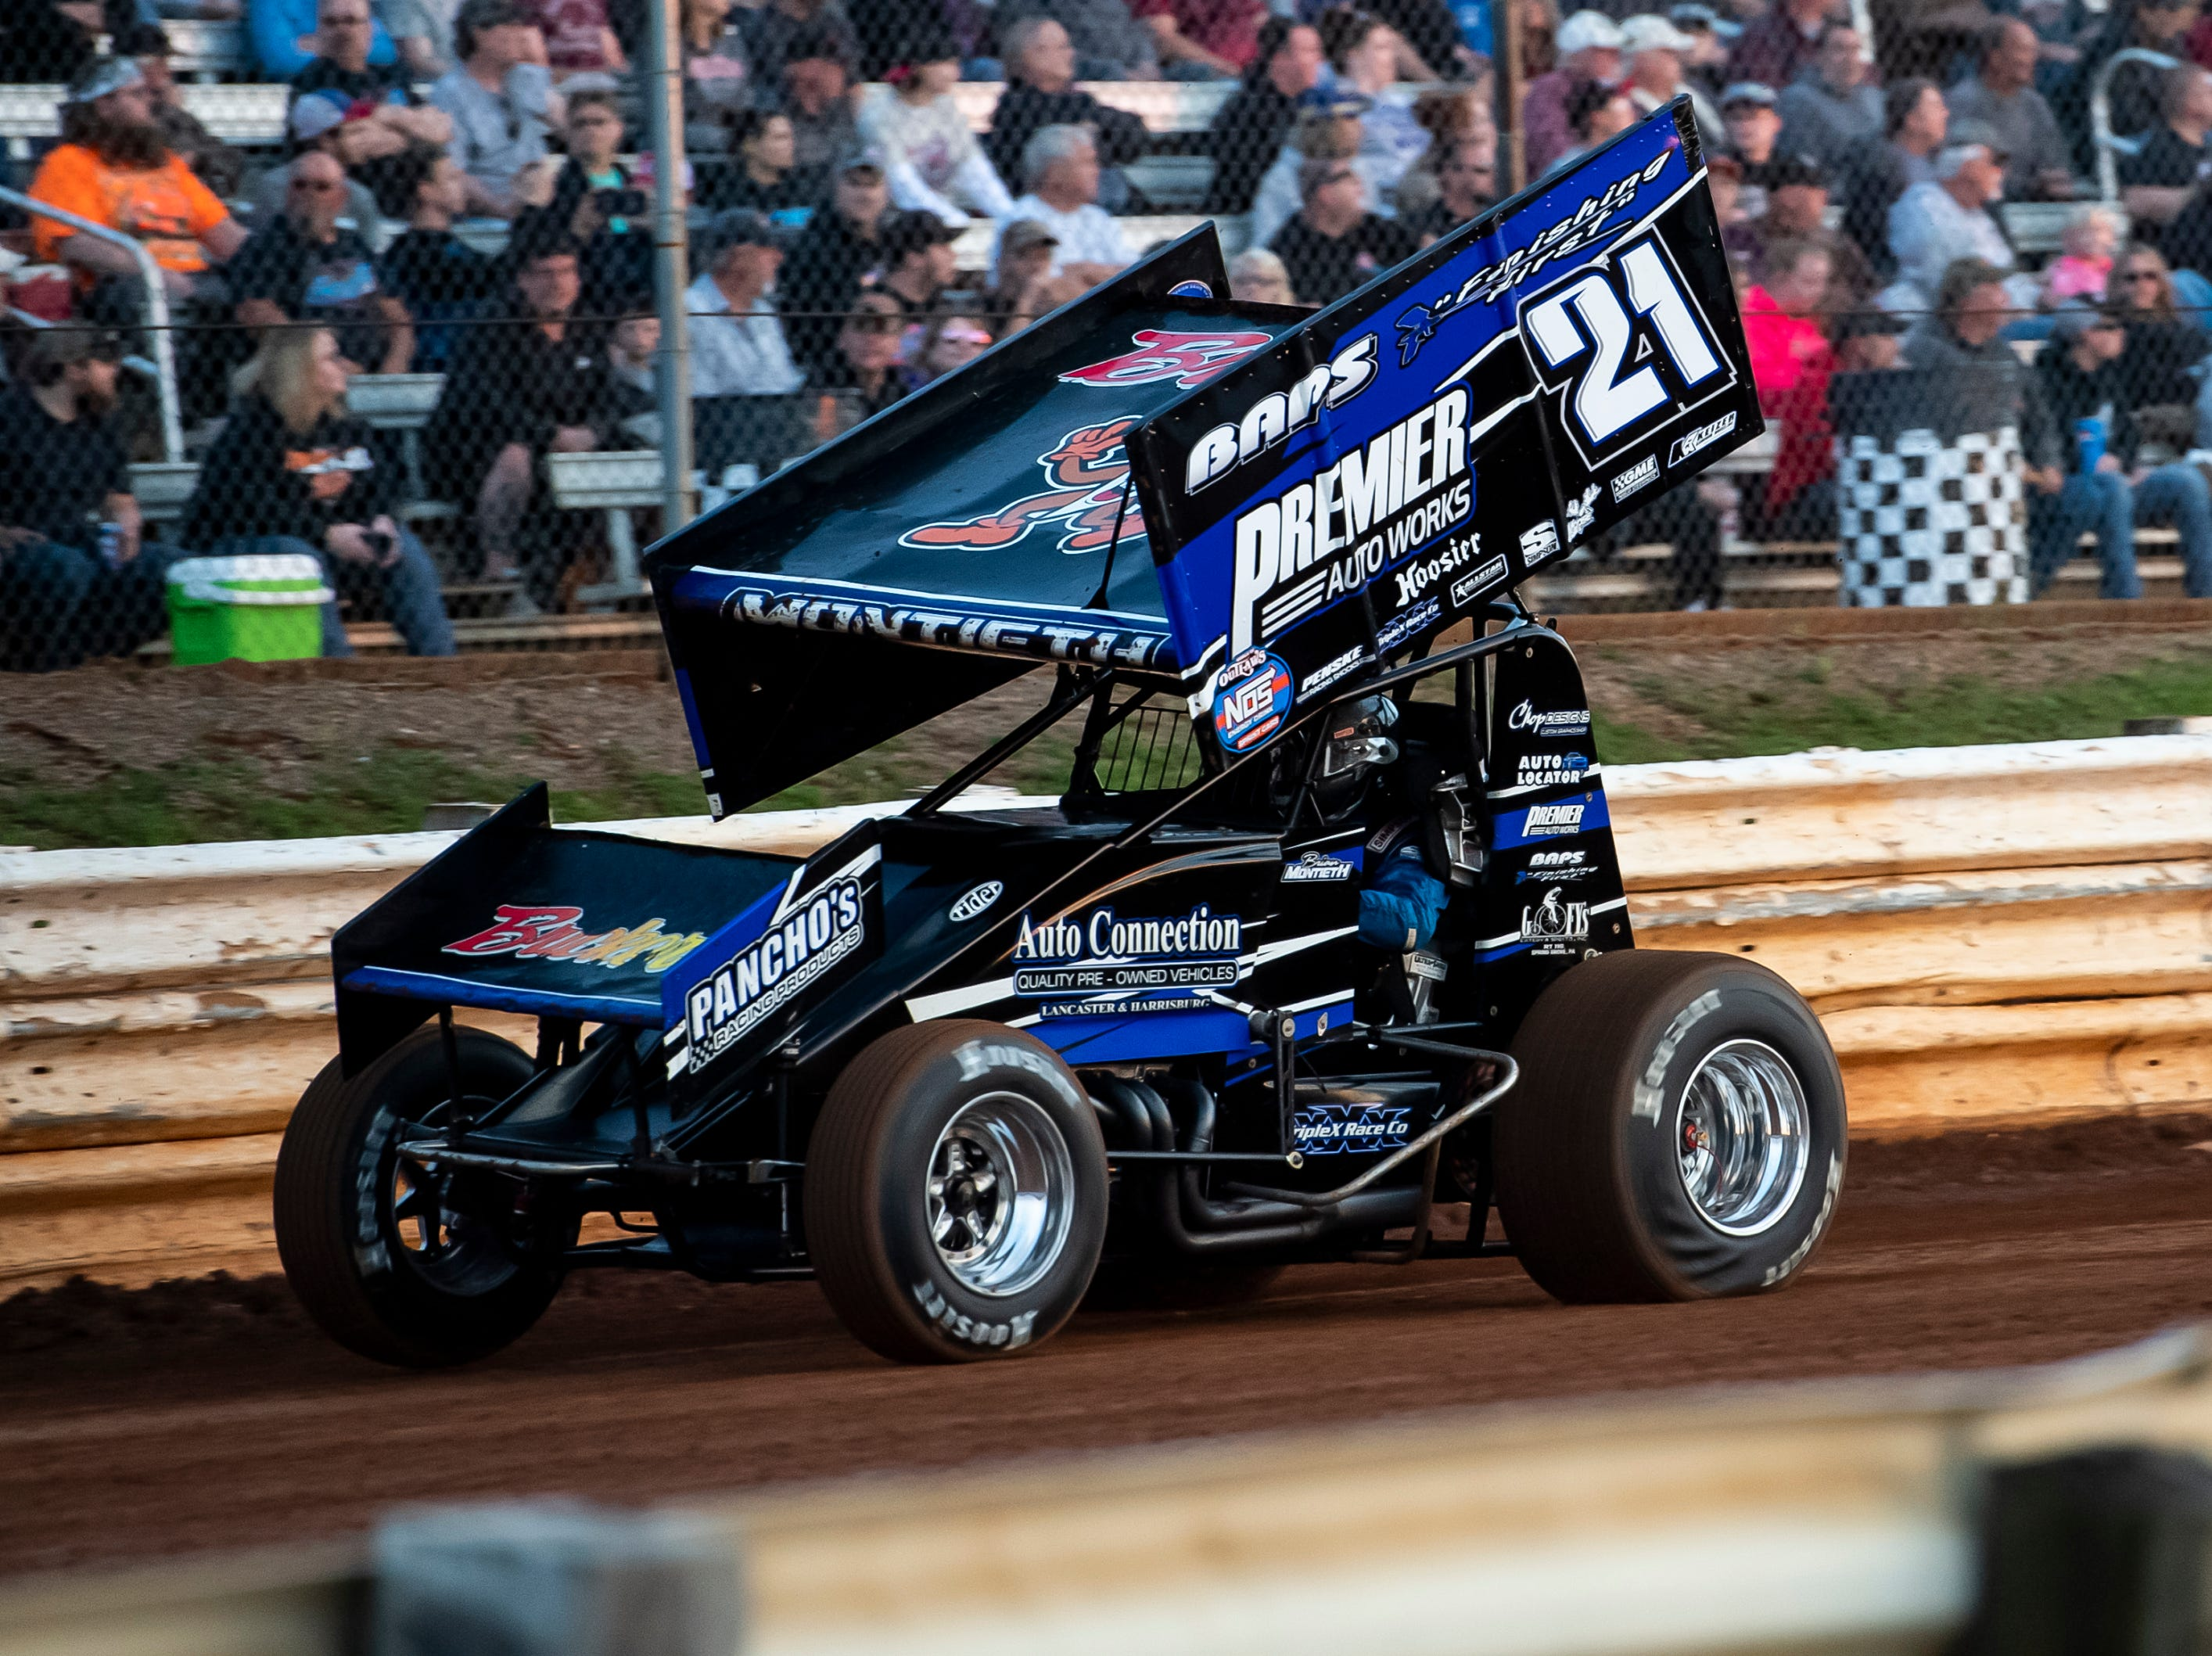 Brian Montieth races in the number 21 car during the World of Outlaws Gettysburg Clash at Lincoln Speedway in Abbottstown on Wednesday, May 15, 2019.